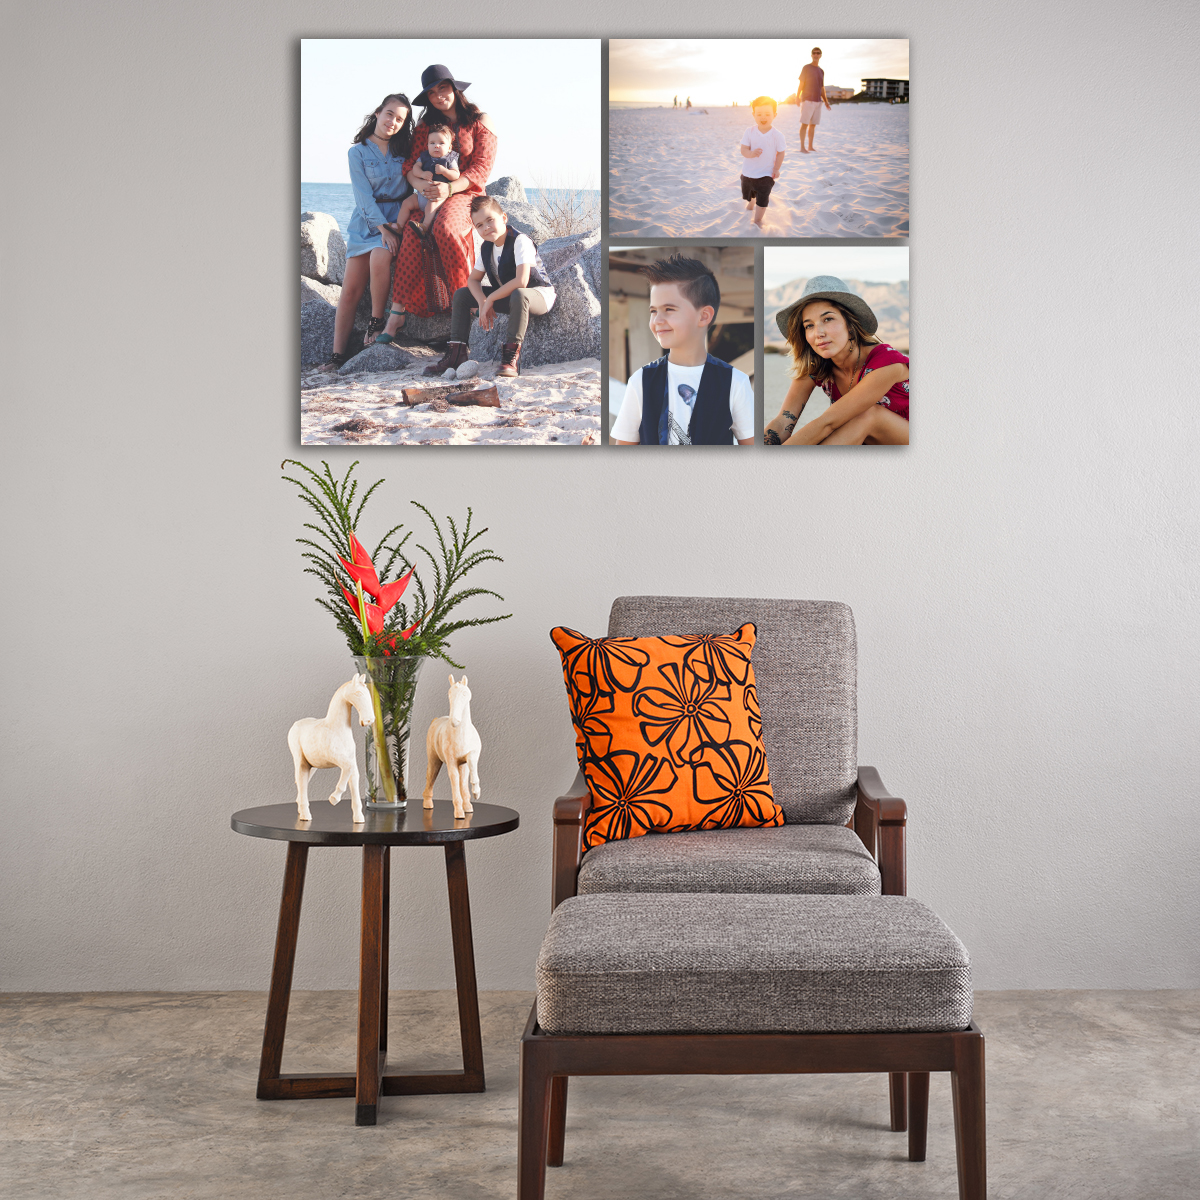 ArtisanHD Wall Art Gallery Clusters and Splits – Cluster 4 – Family Portraits Wall Art Collage